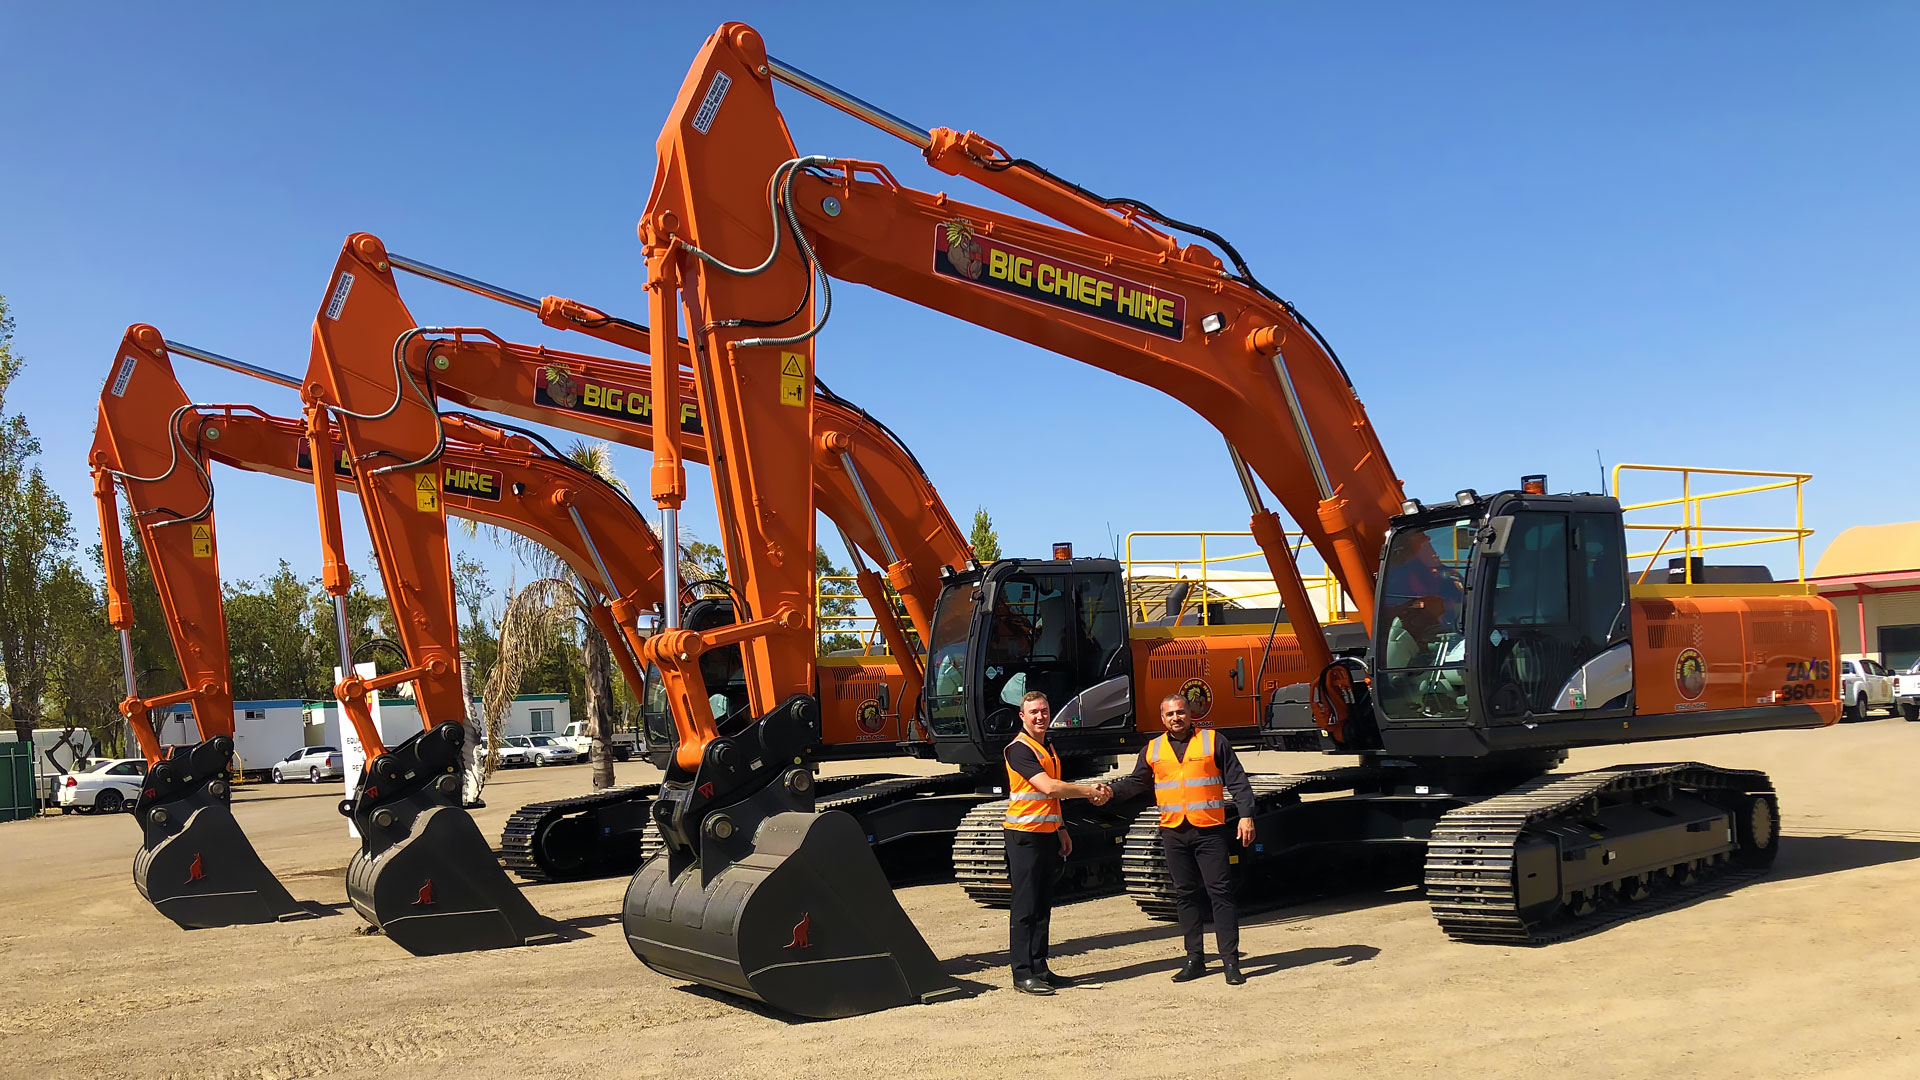 three-new-big-chief-hire-hatachi-excavators-01.jpg